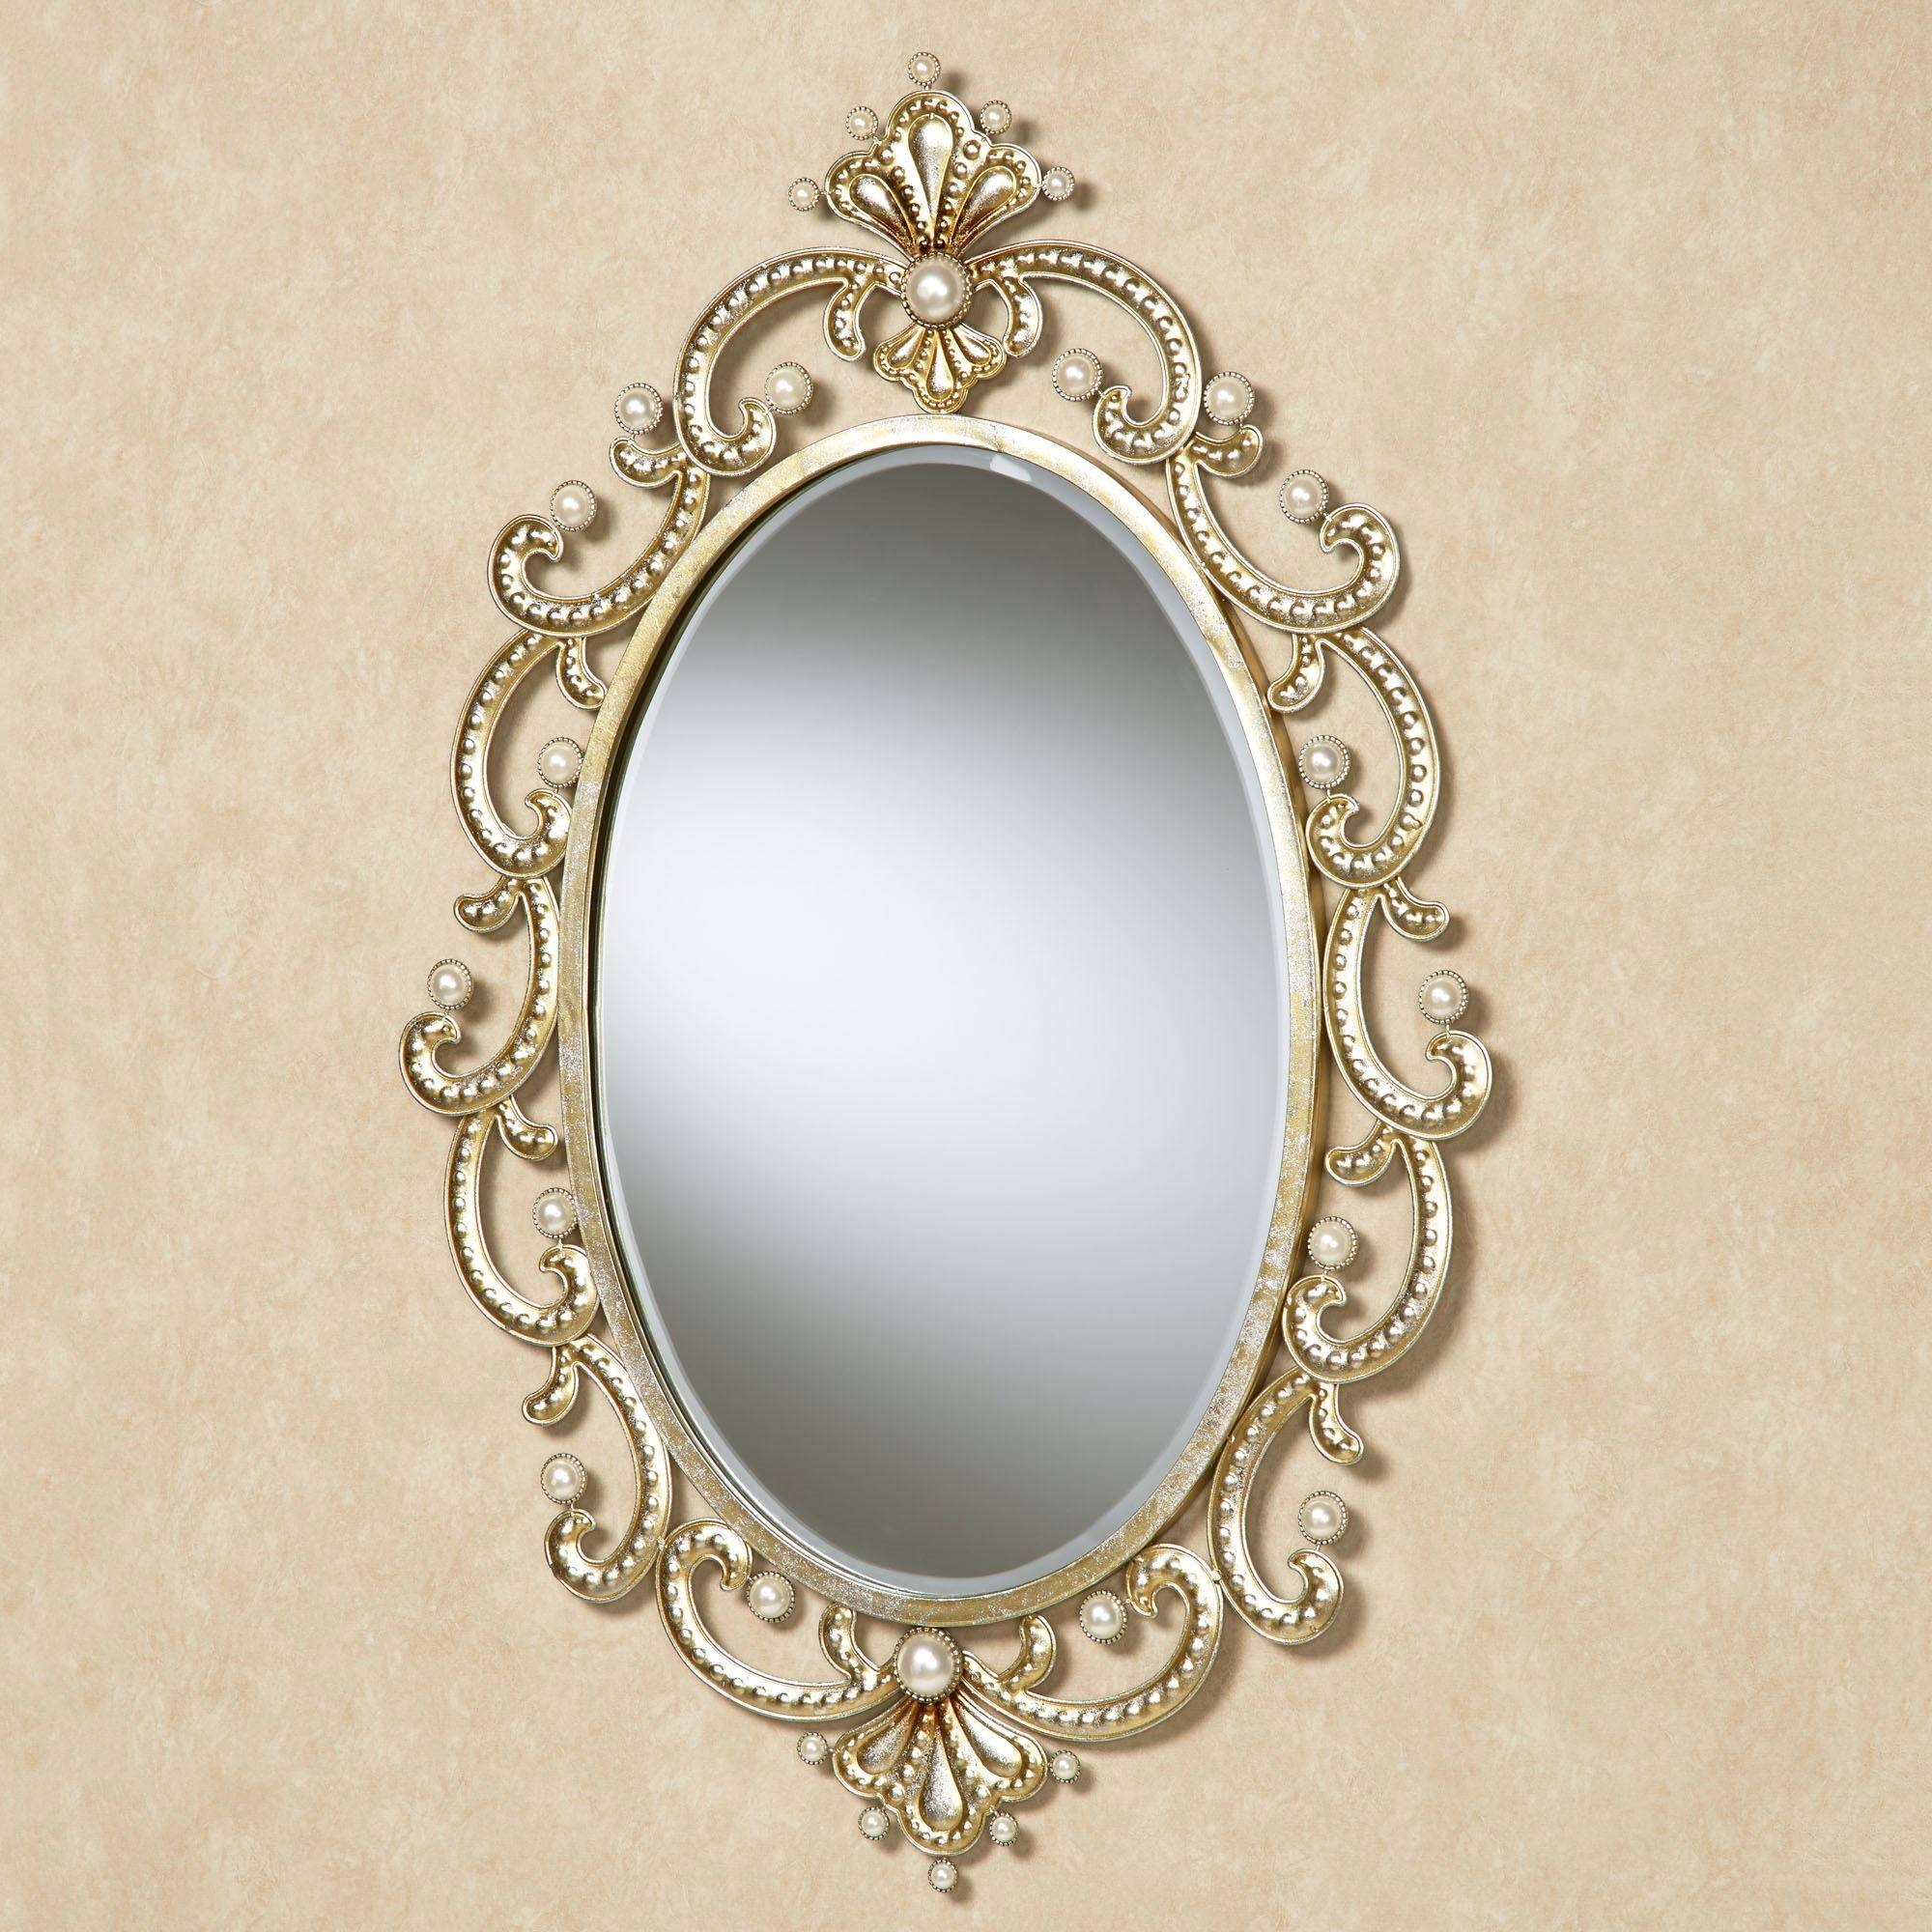 Giorgianna Pearl Oval Wall Mirror with regard to Oval Wall Mirrors (Image 9 of 25)